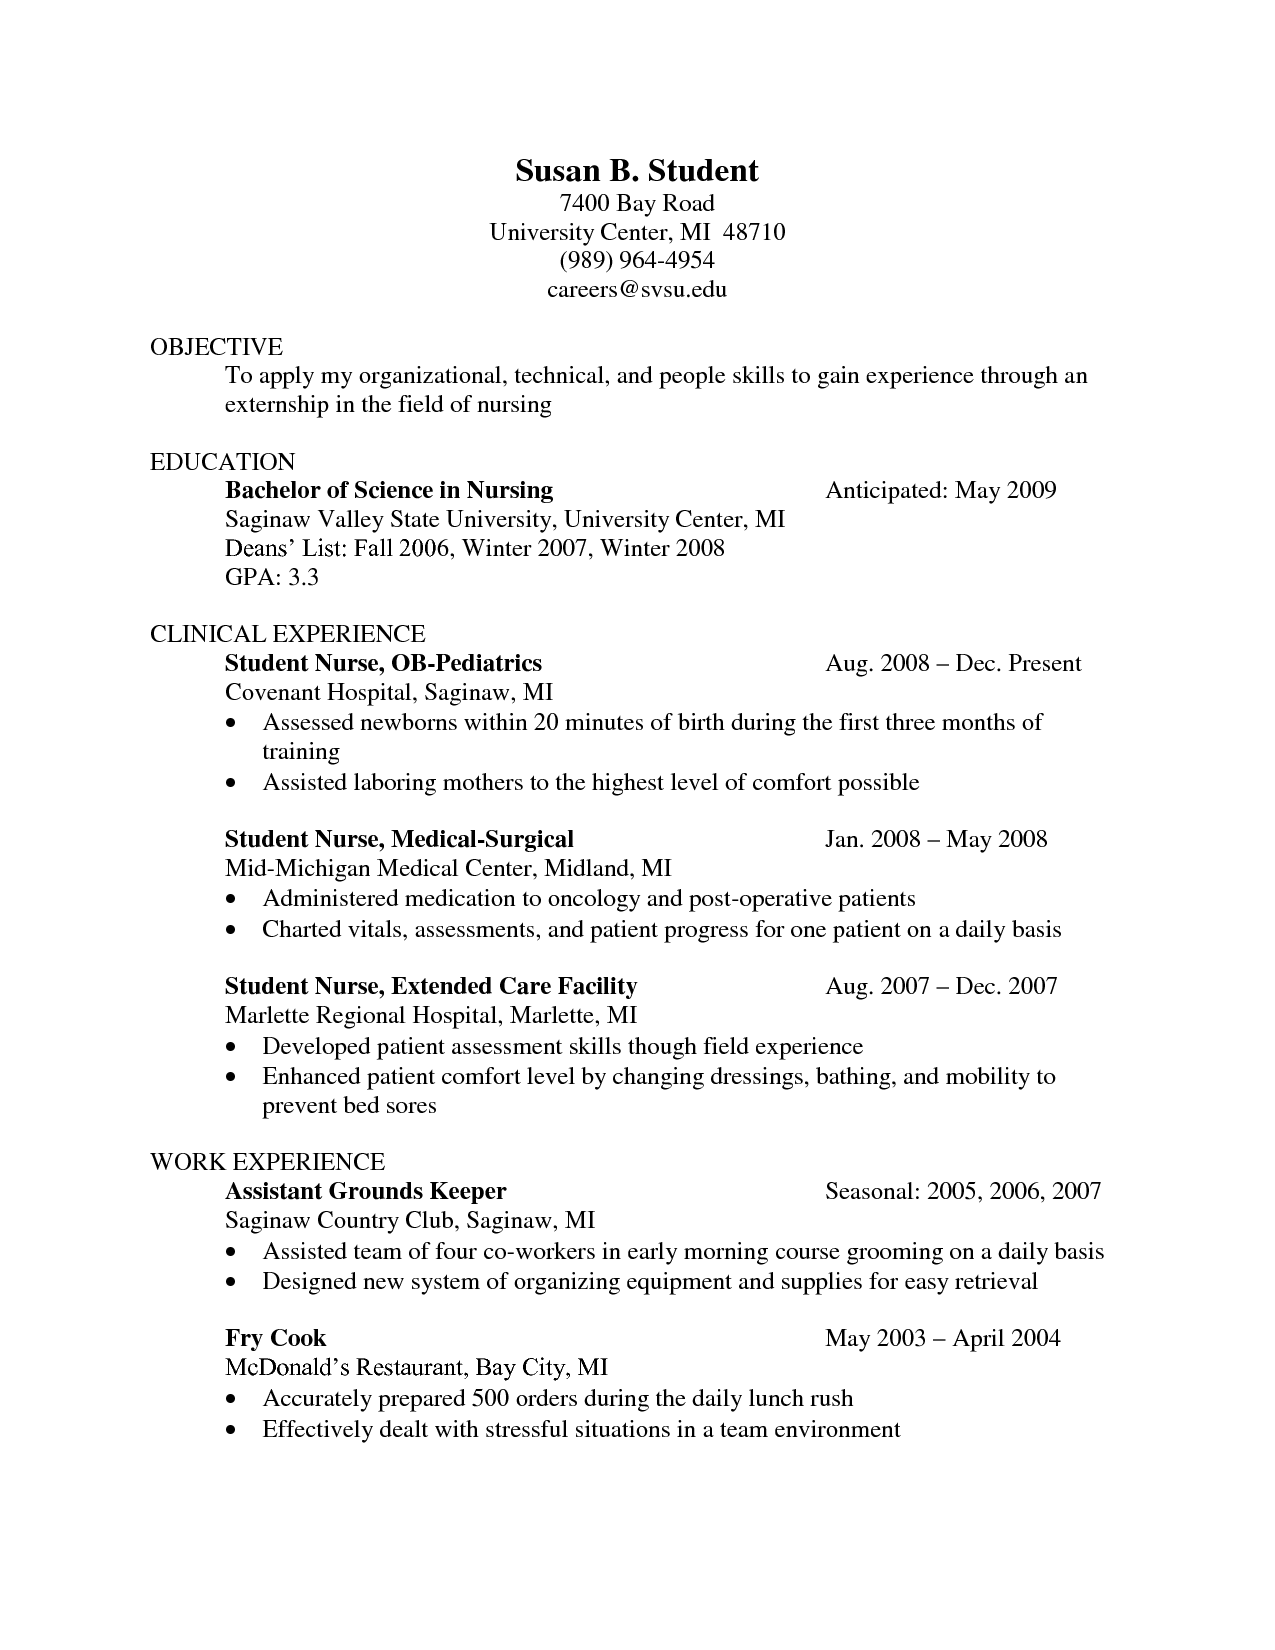 Oncology Nurse Resume Templates   Http://www.resumecareer.info/oncology  Nursing Objective For Resume